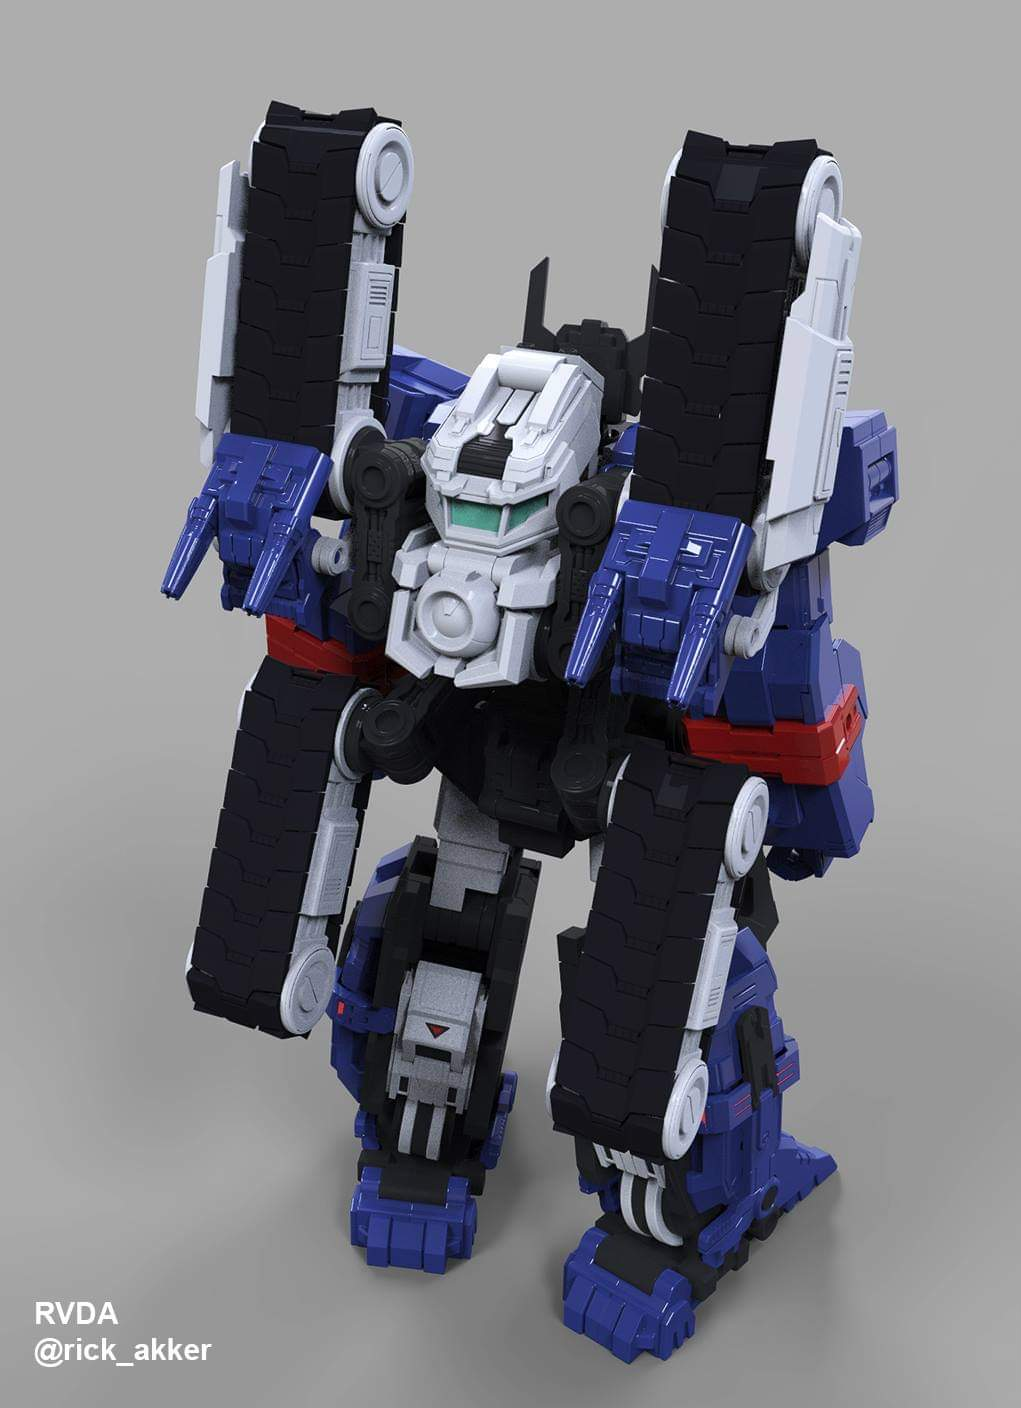 [Mastermind Creations] Produit Tiers - Reformatted R-50 Supermax - aka Fortress/Forteresse Maximus des BD IDW OfzzIgn2_o